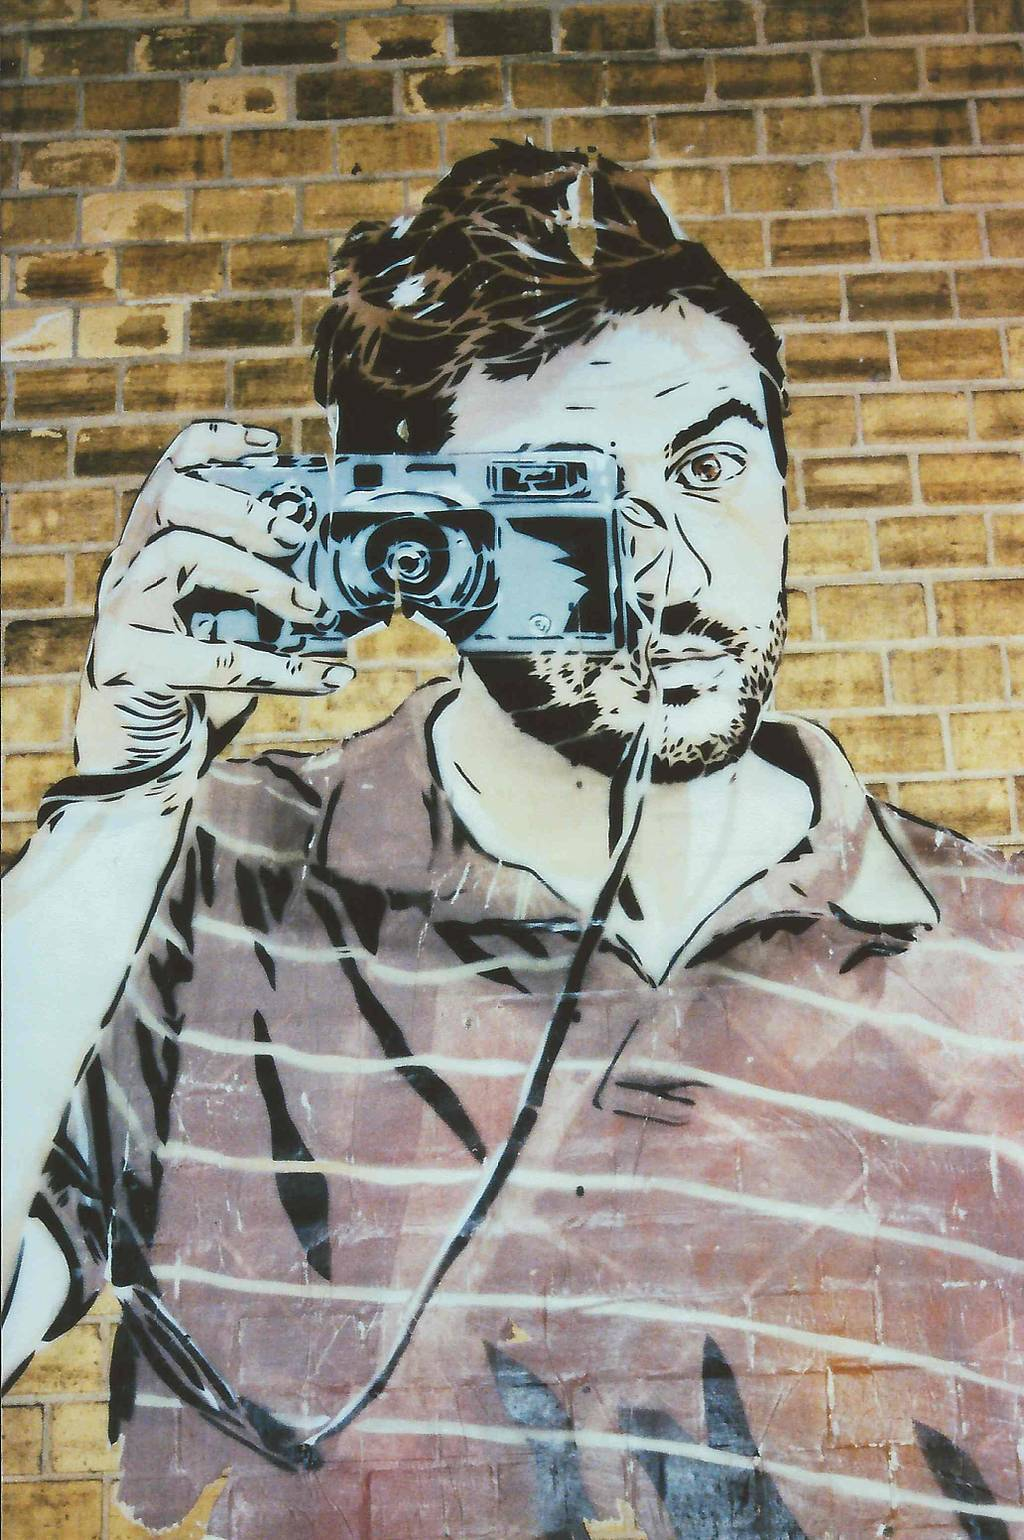 Barcelona Workshop: Street Art vs LomoKino